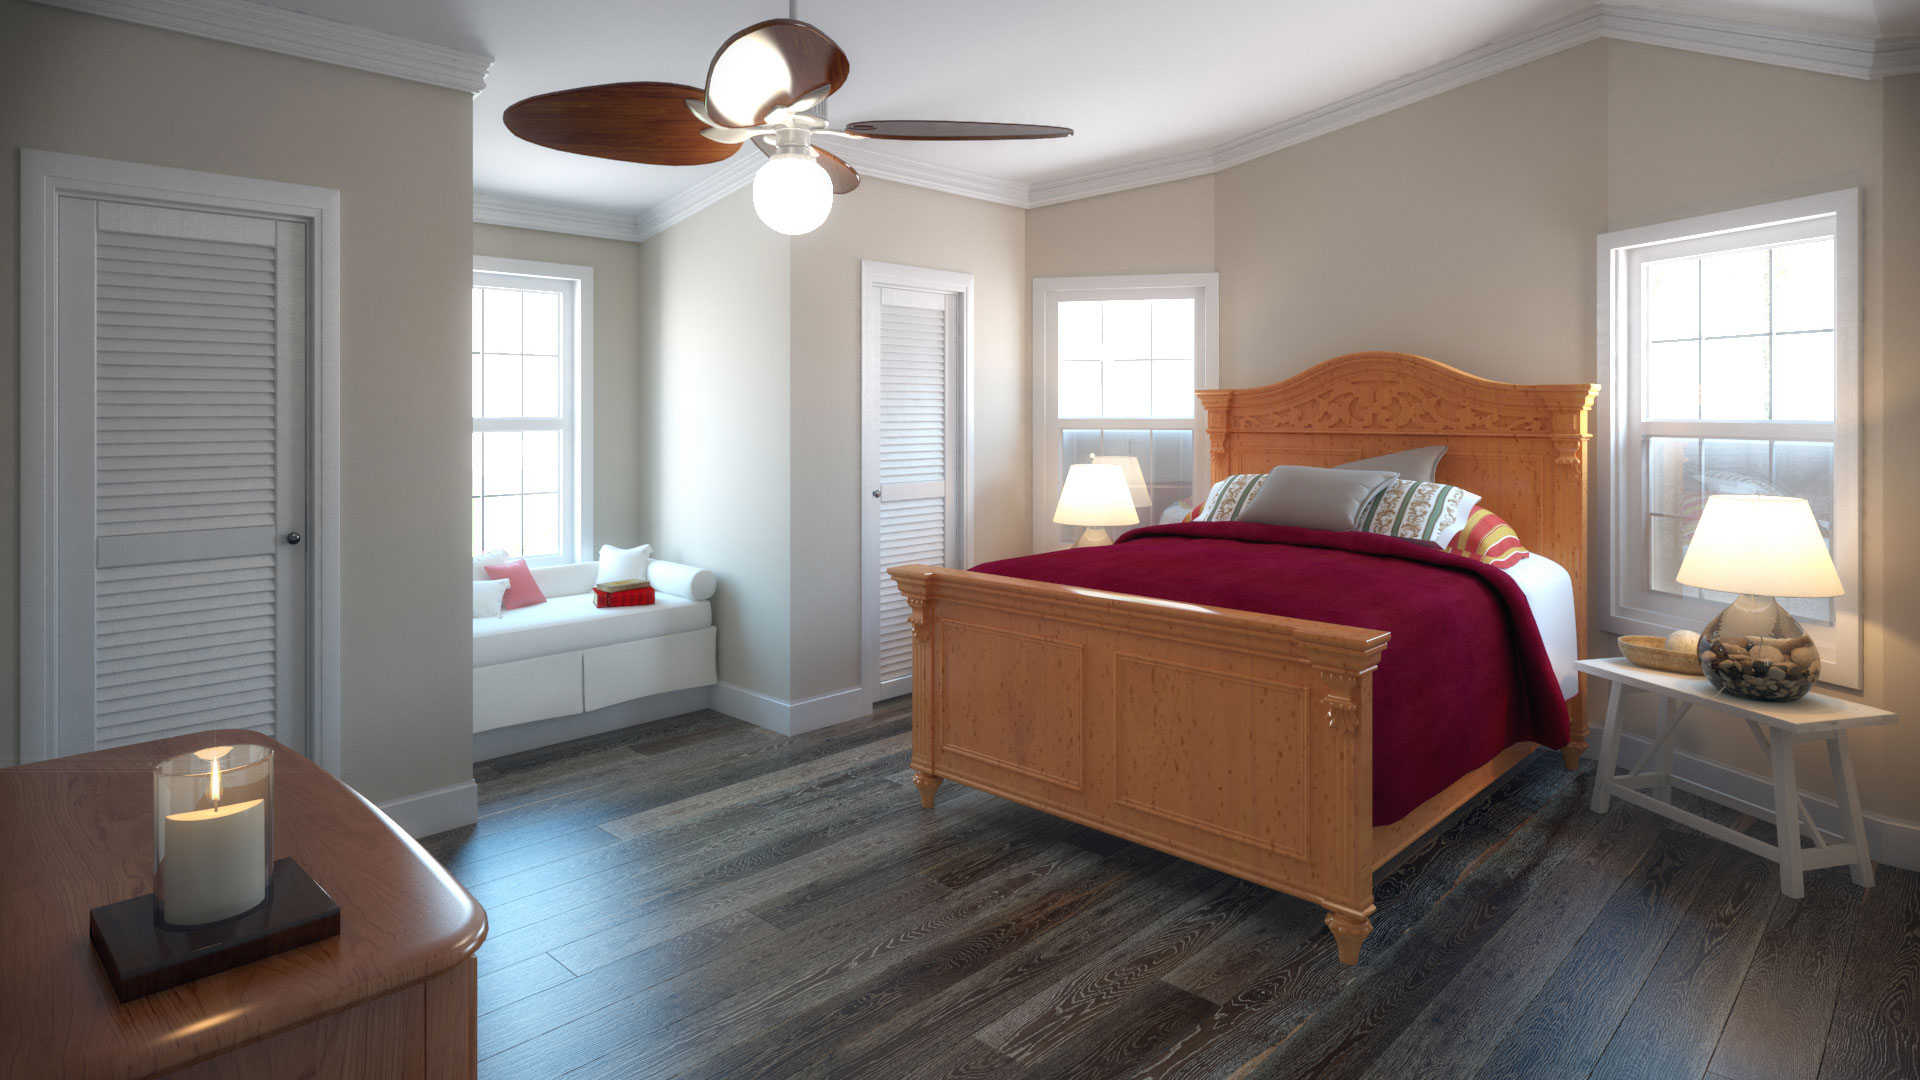 Manufactured Home Interior Bedroom Rendering